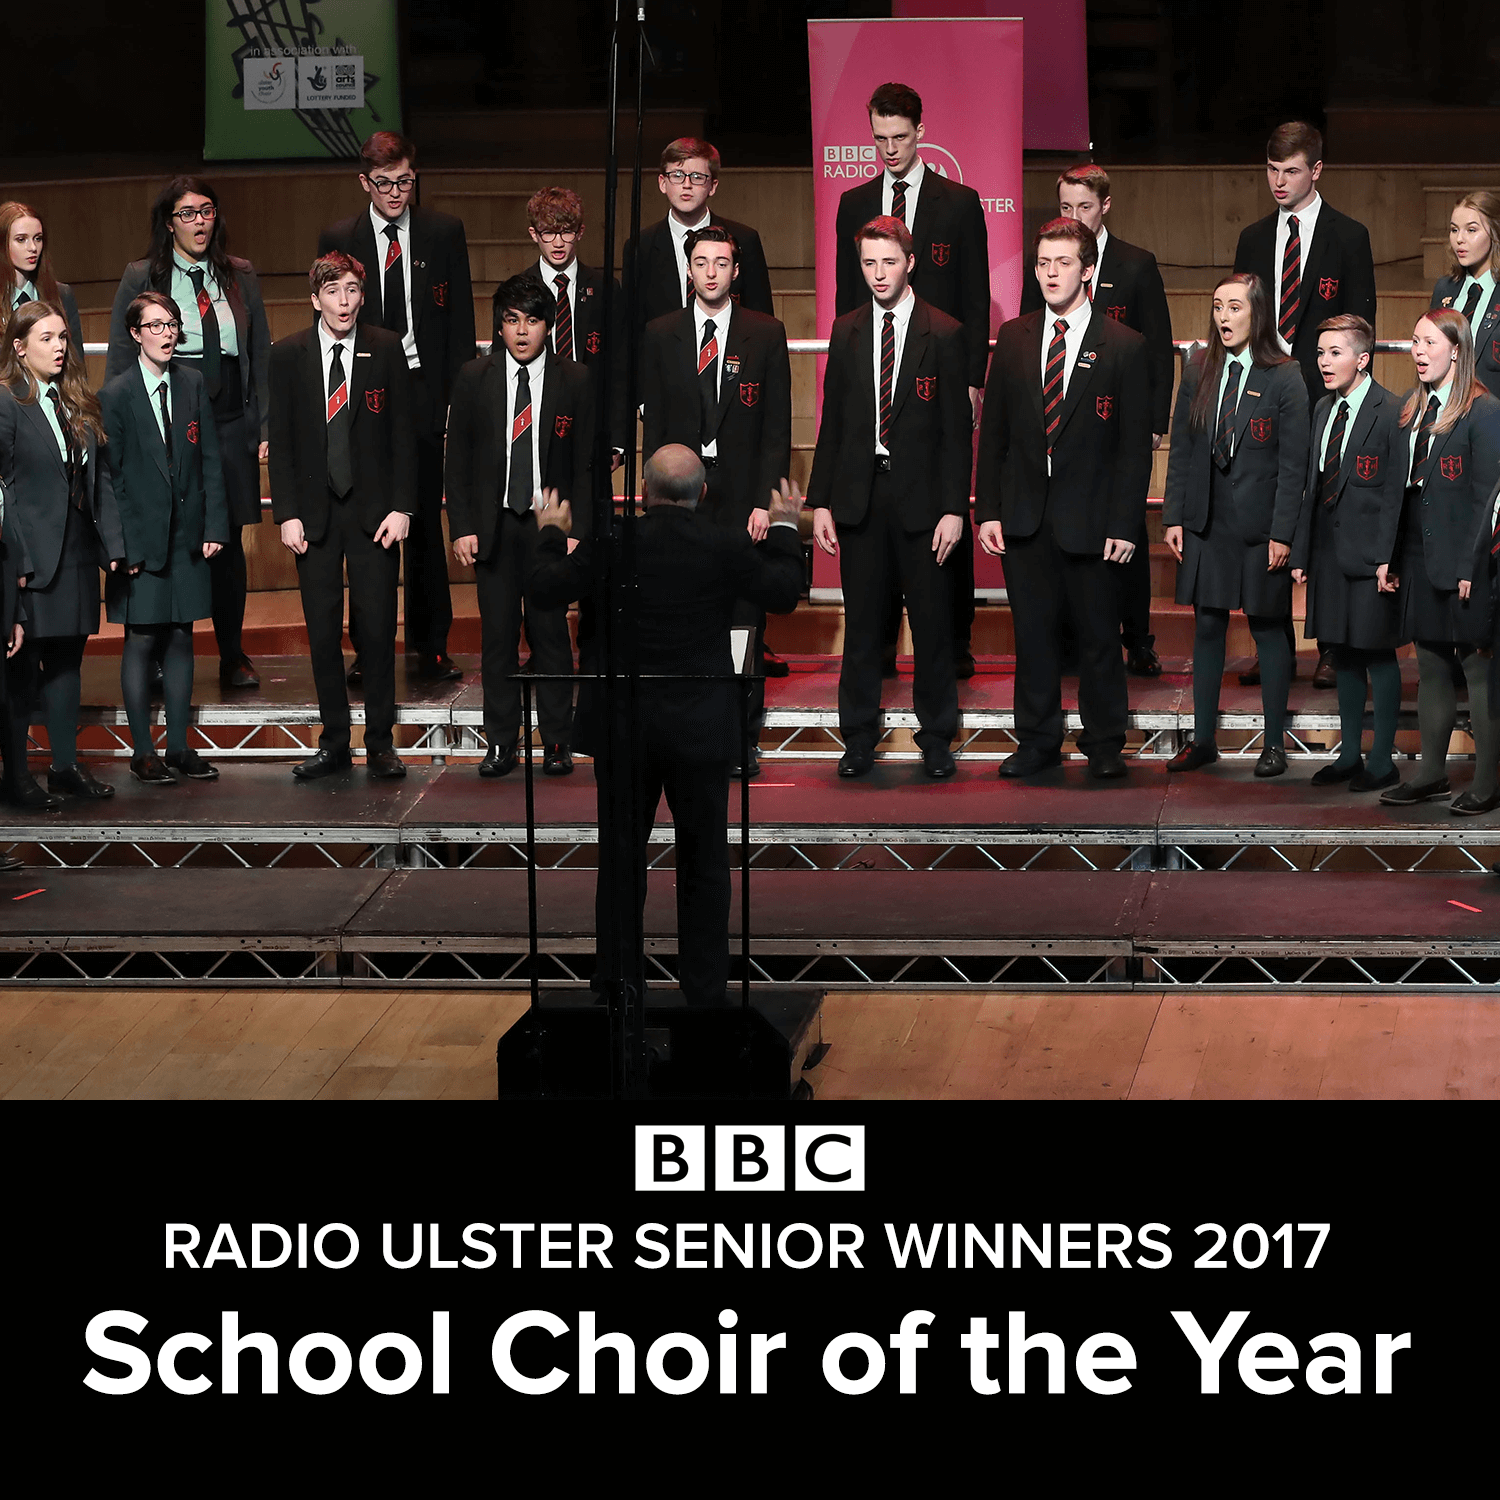 BBC Radio Ulster School Choir of the Year 2017